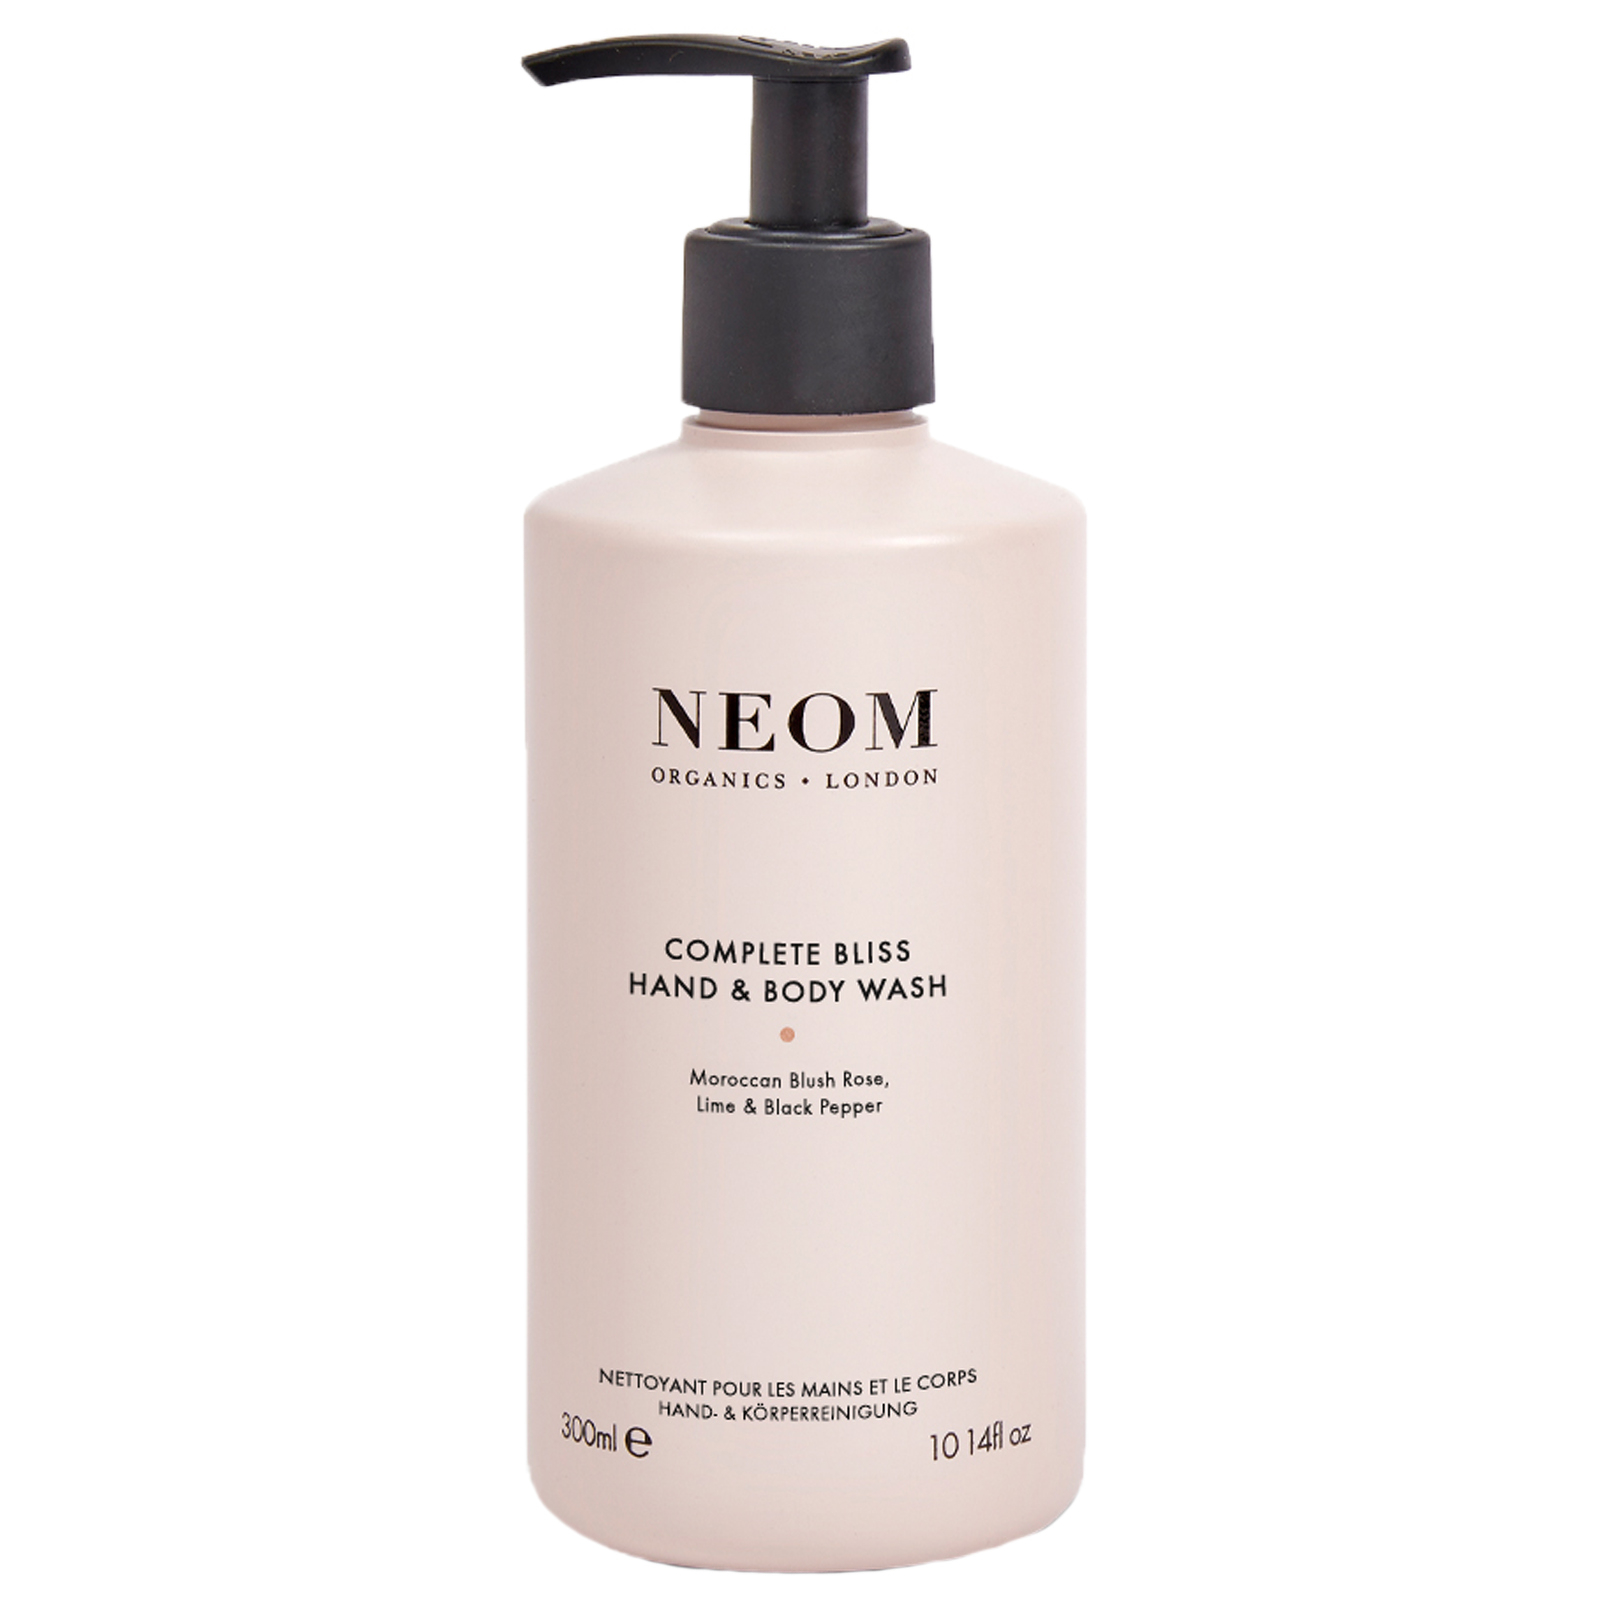 Neom Organics London Scent To De-Stress Complete Bliss Body & Hand Wash 300ml